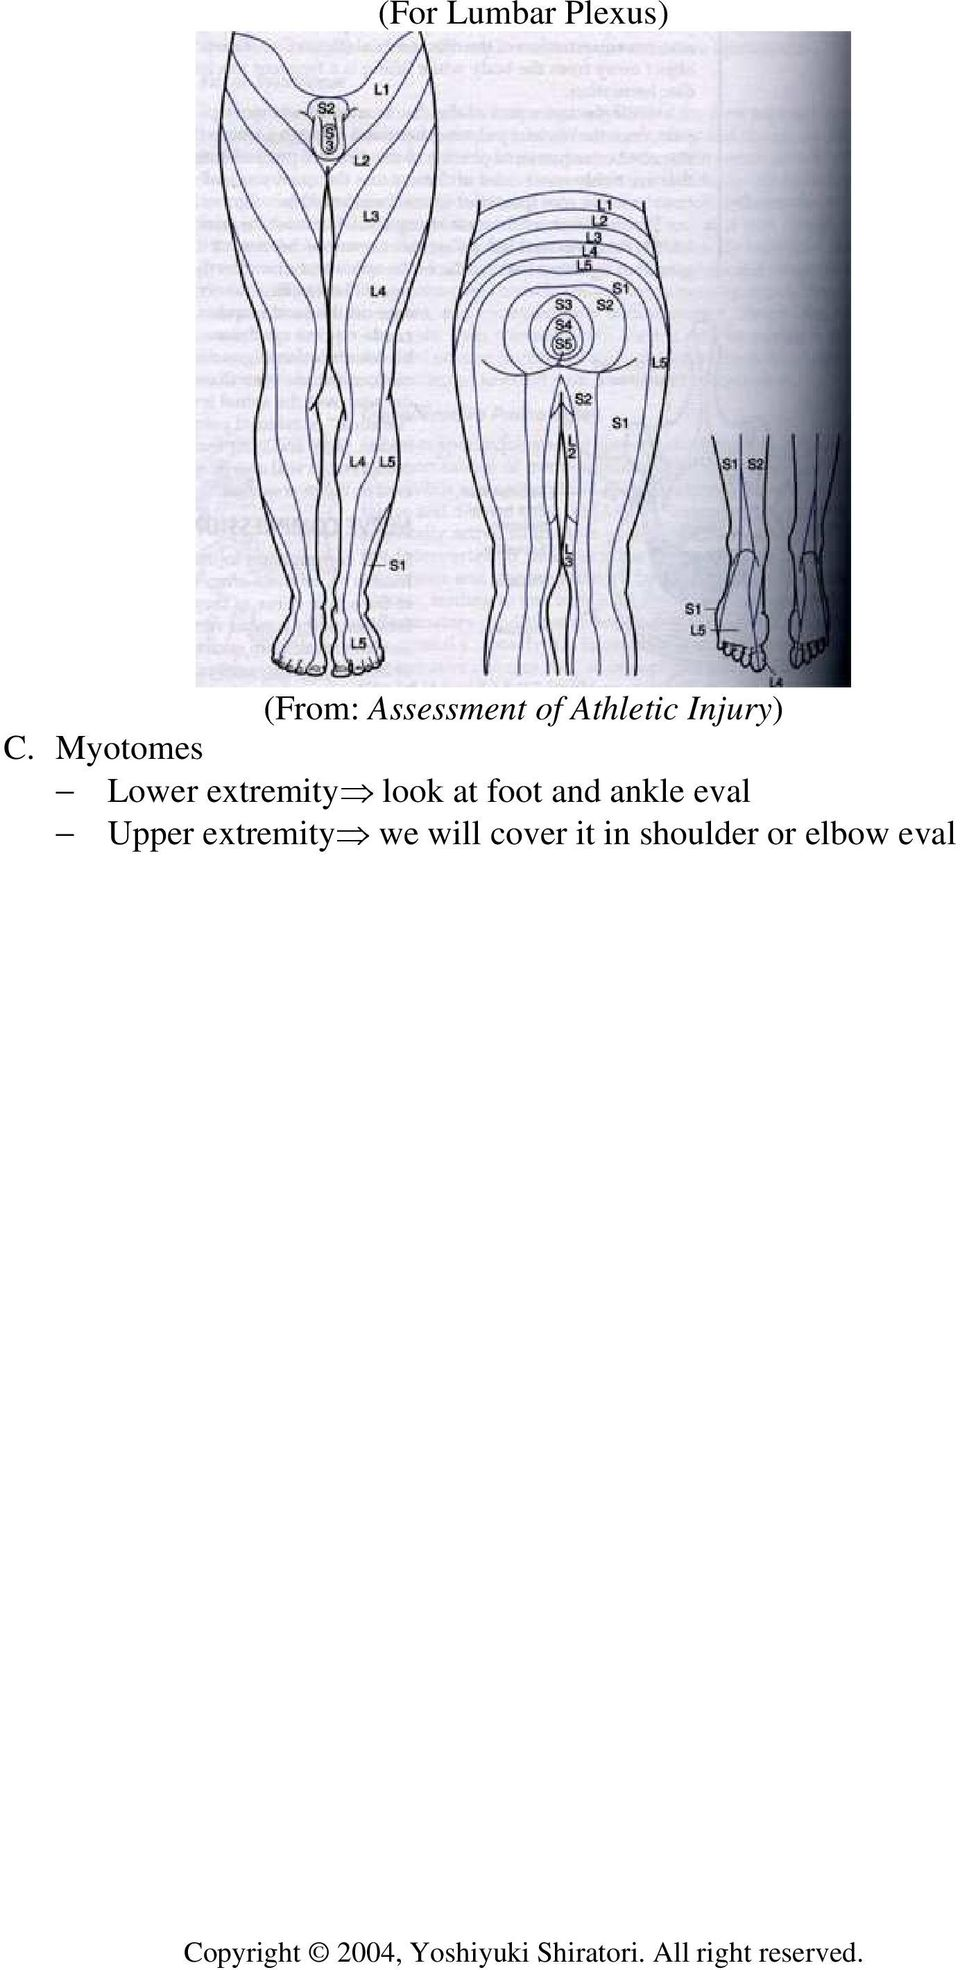 Myotomes Lower extremity look at foot and